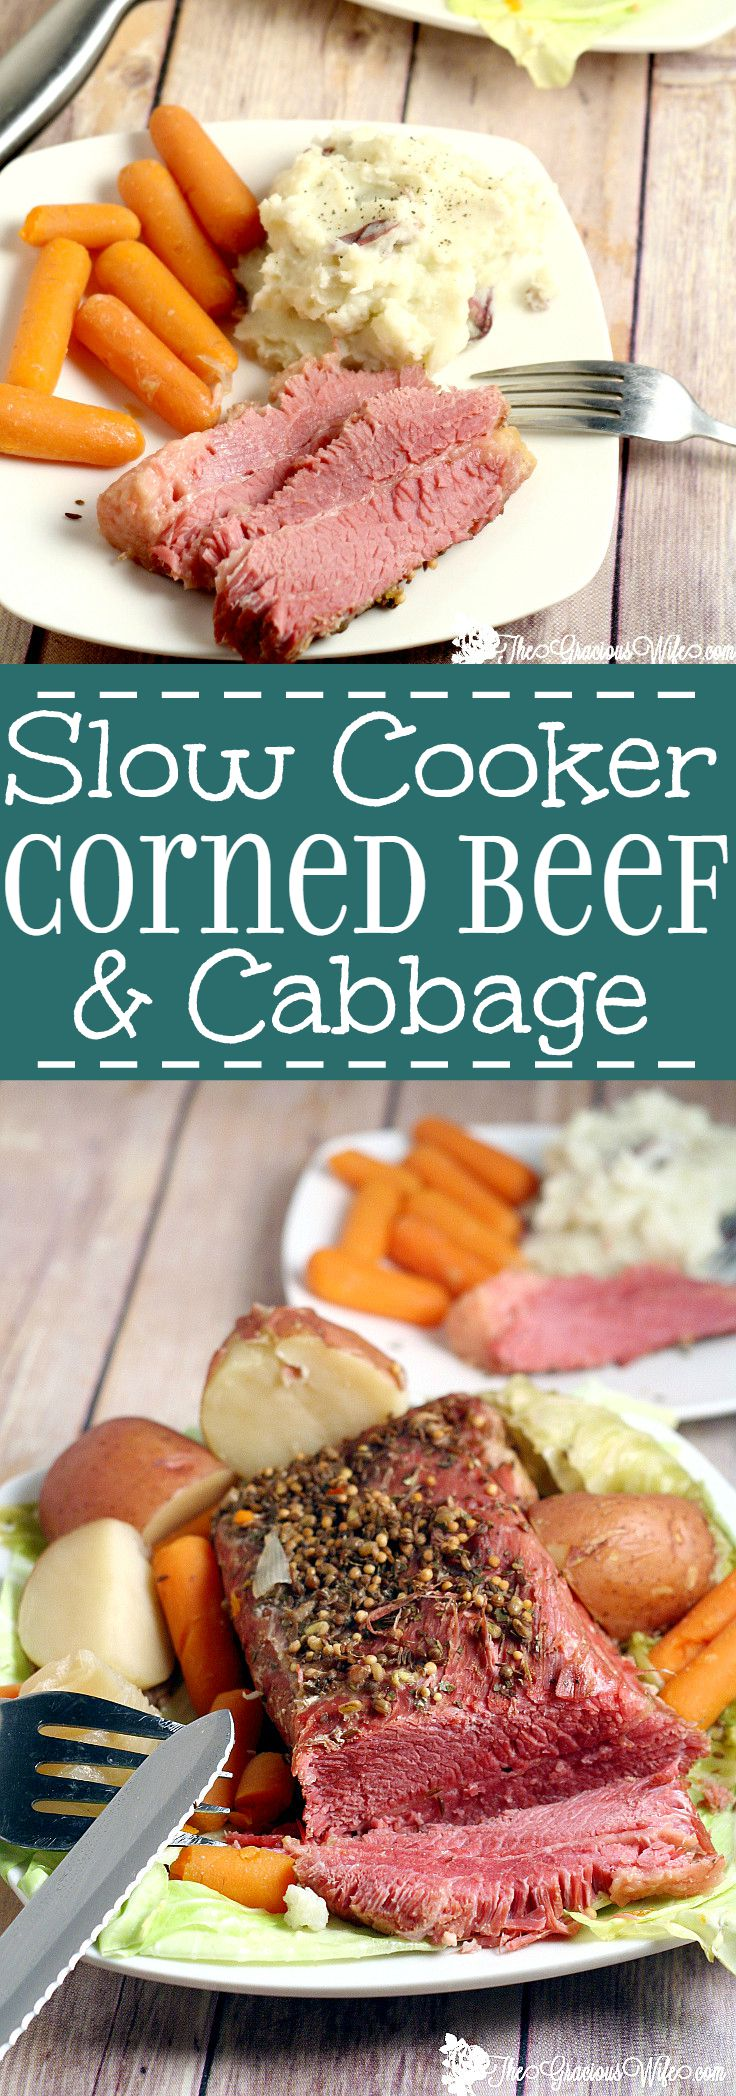 Slow Cooker Corned Beef and Cabbage is the perfect traditional dish to ...